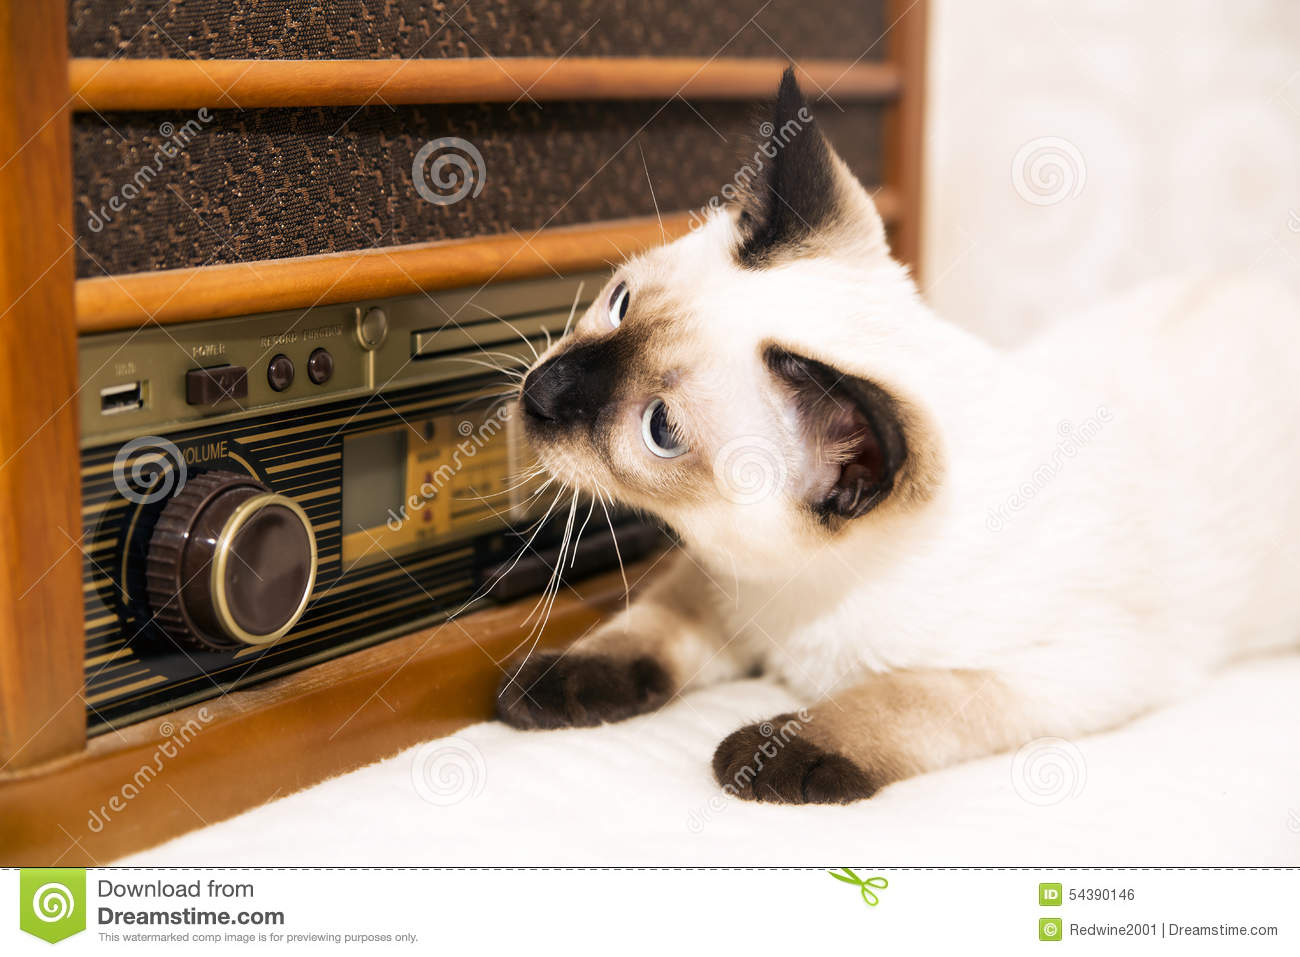 Kittens can also enjoy the music